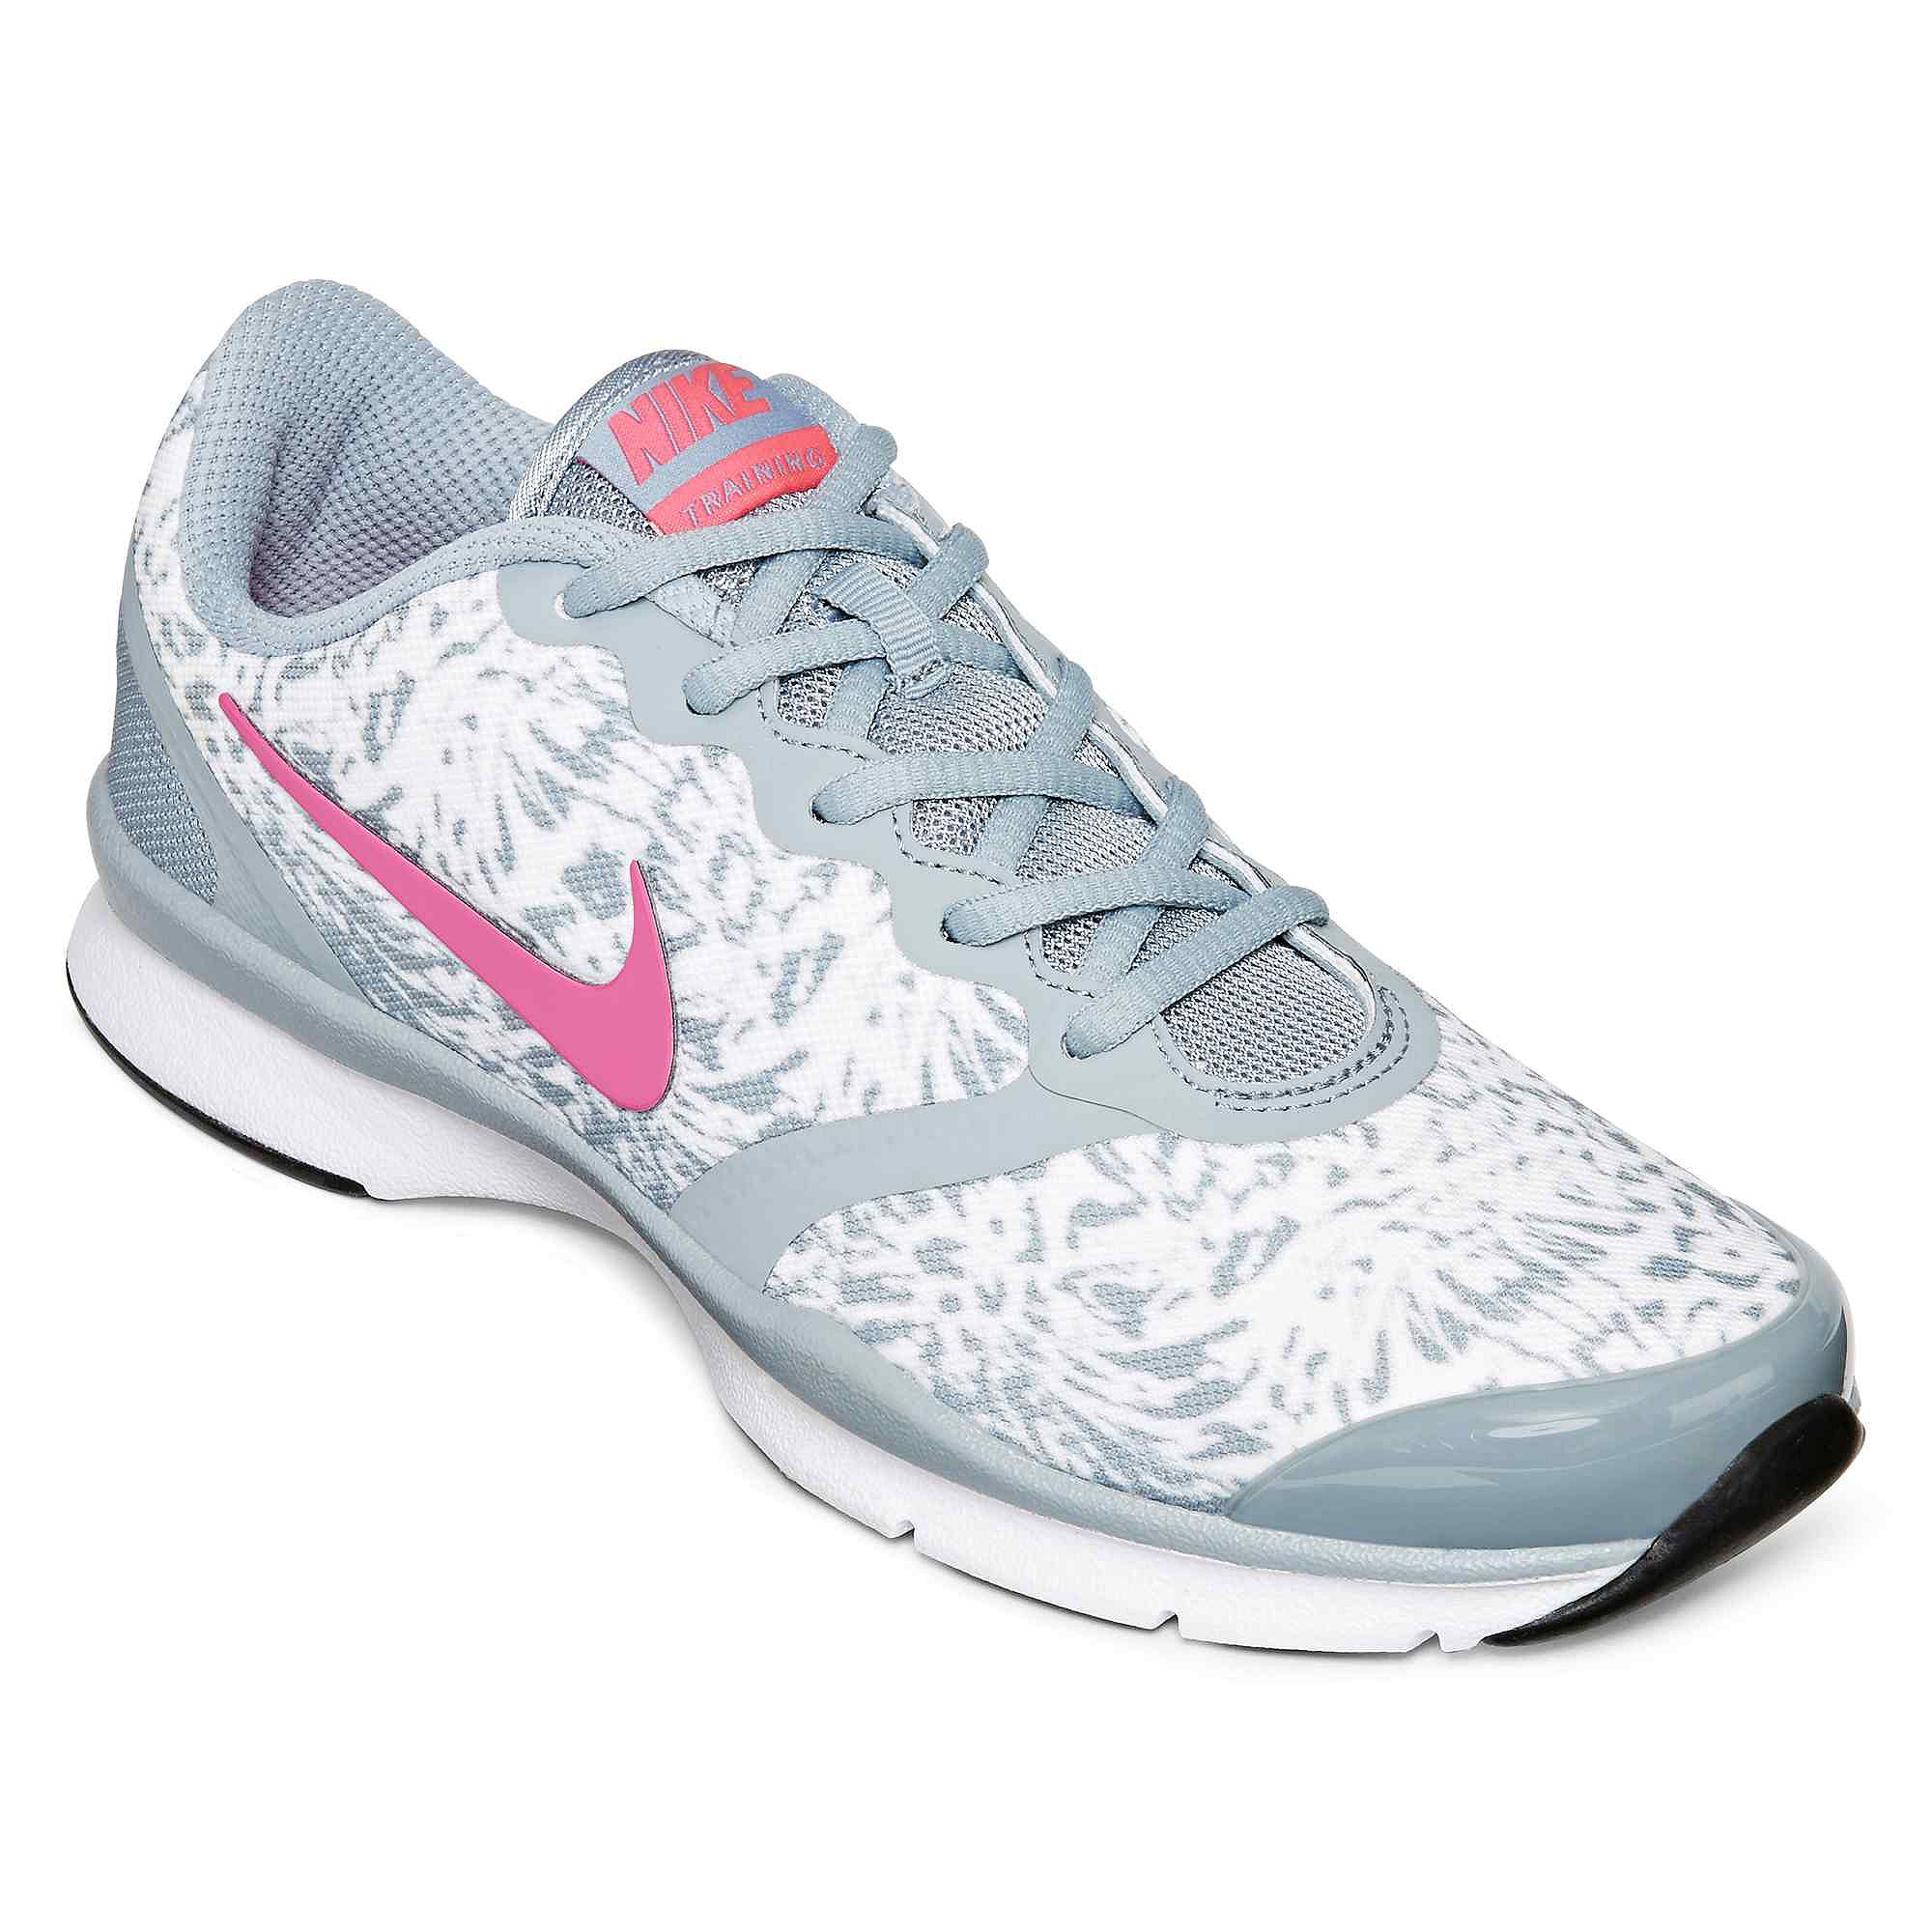 ... UPC 886061901179 product image for Nike In-Season TR 4 Print Womens  Training Shoes |